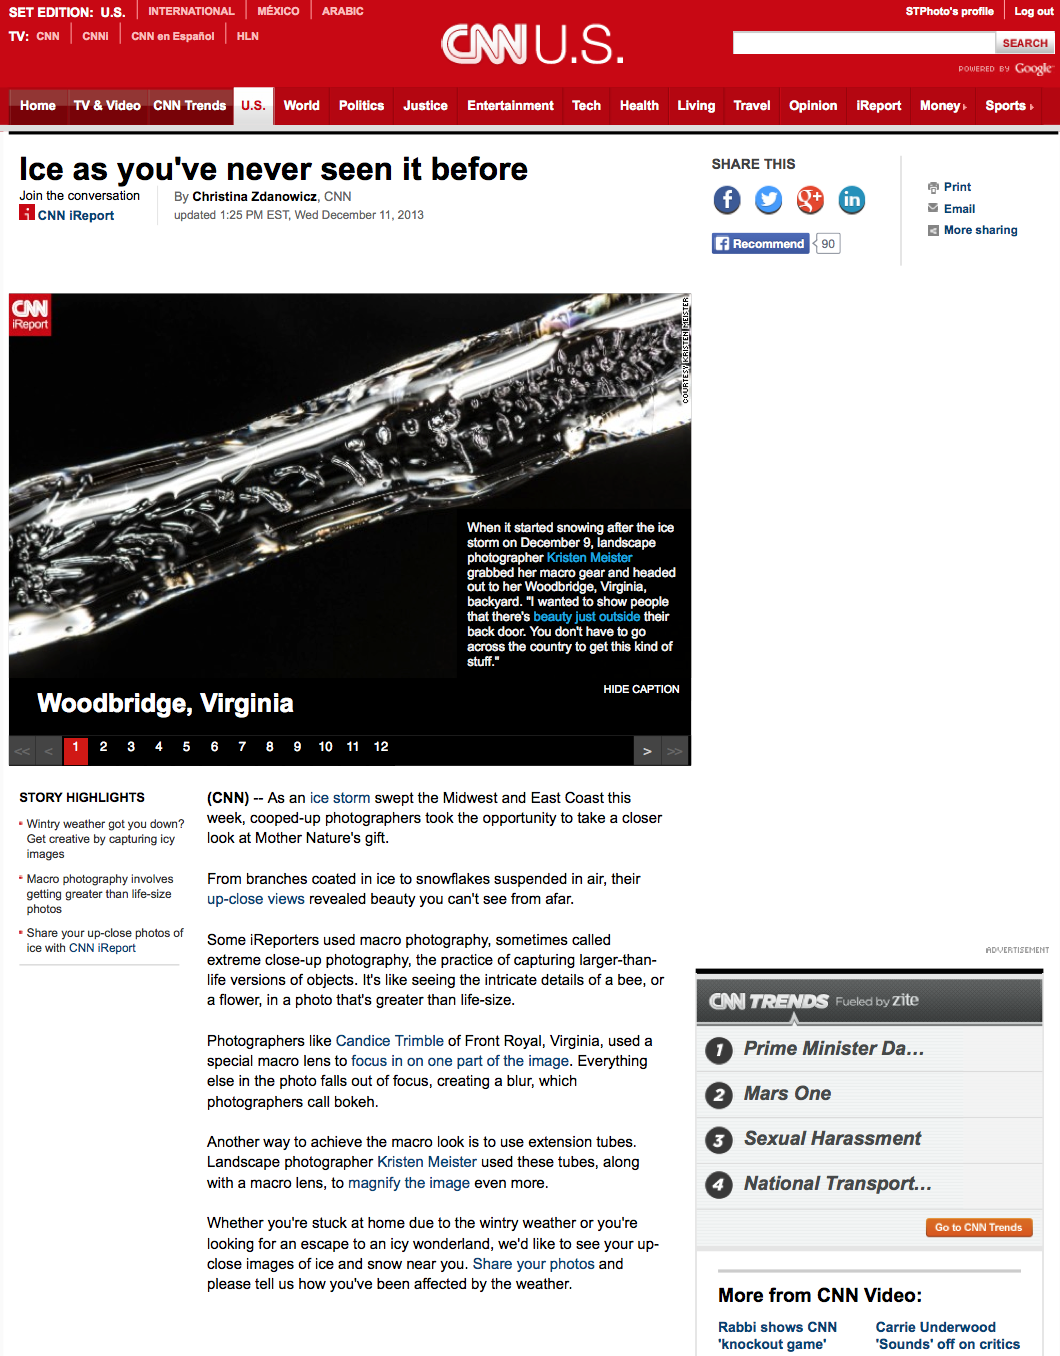 The article as it appeared on CNN.com - linked from the CNN home page. The first two images were from my submission to CNN's editors.